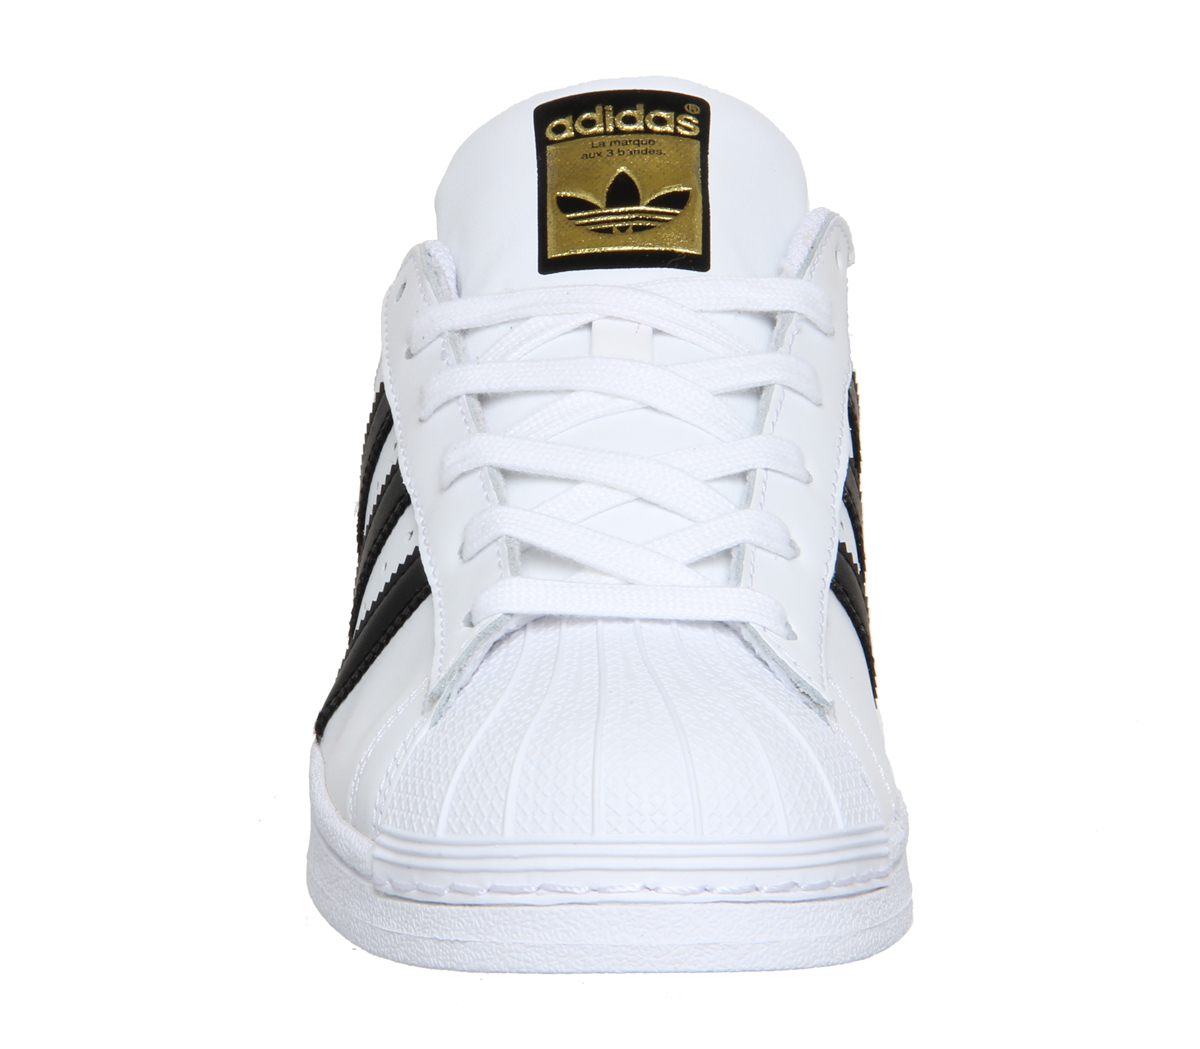 Womens-Adidas-Superstar-WHITE-BLACK-FOUNDATION-Trainers-Shoes